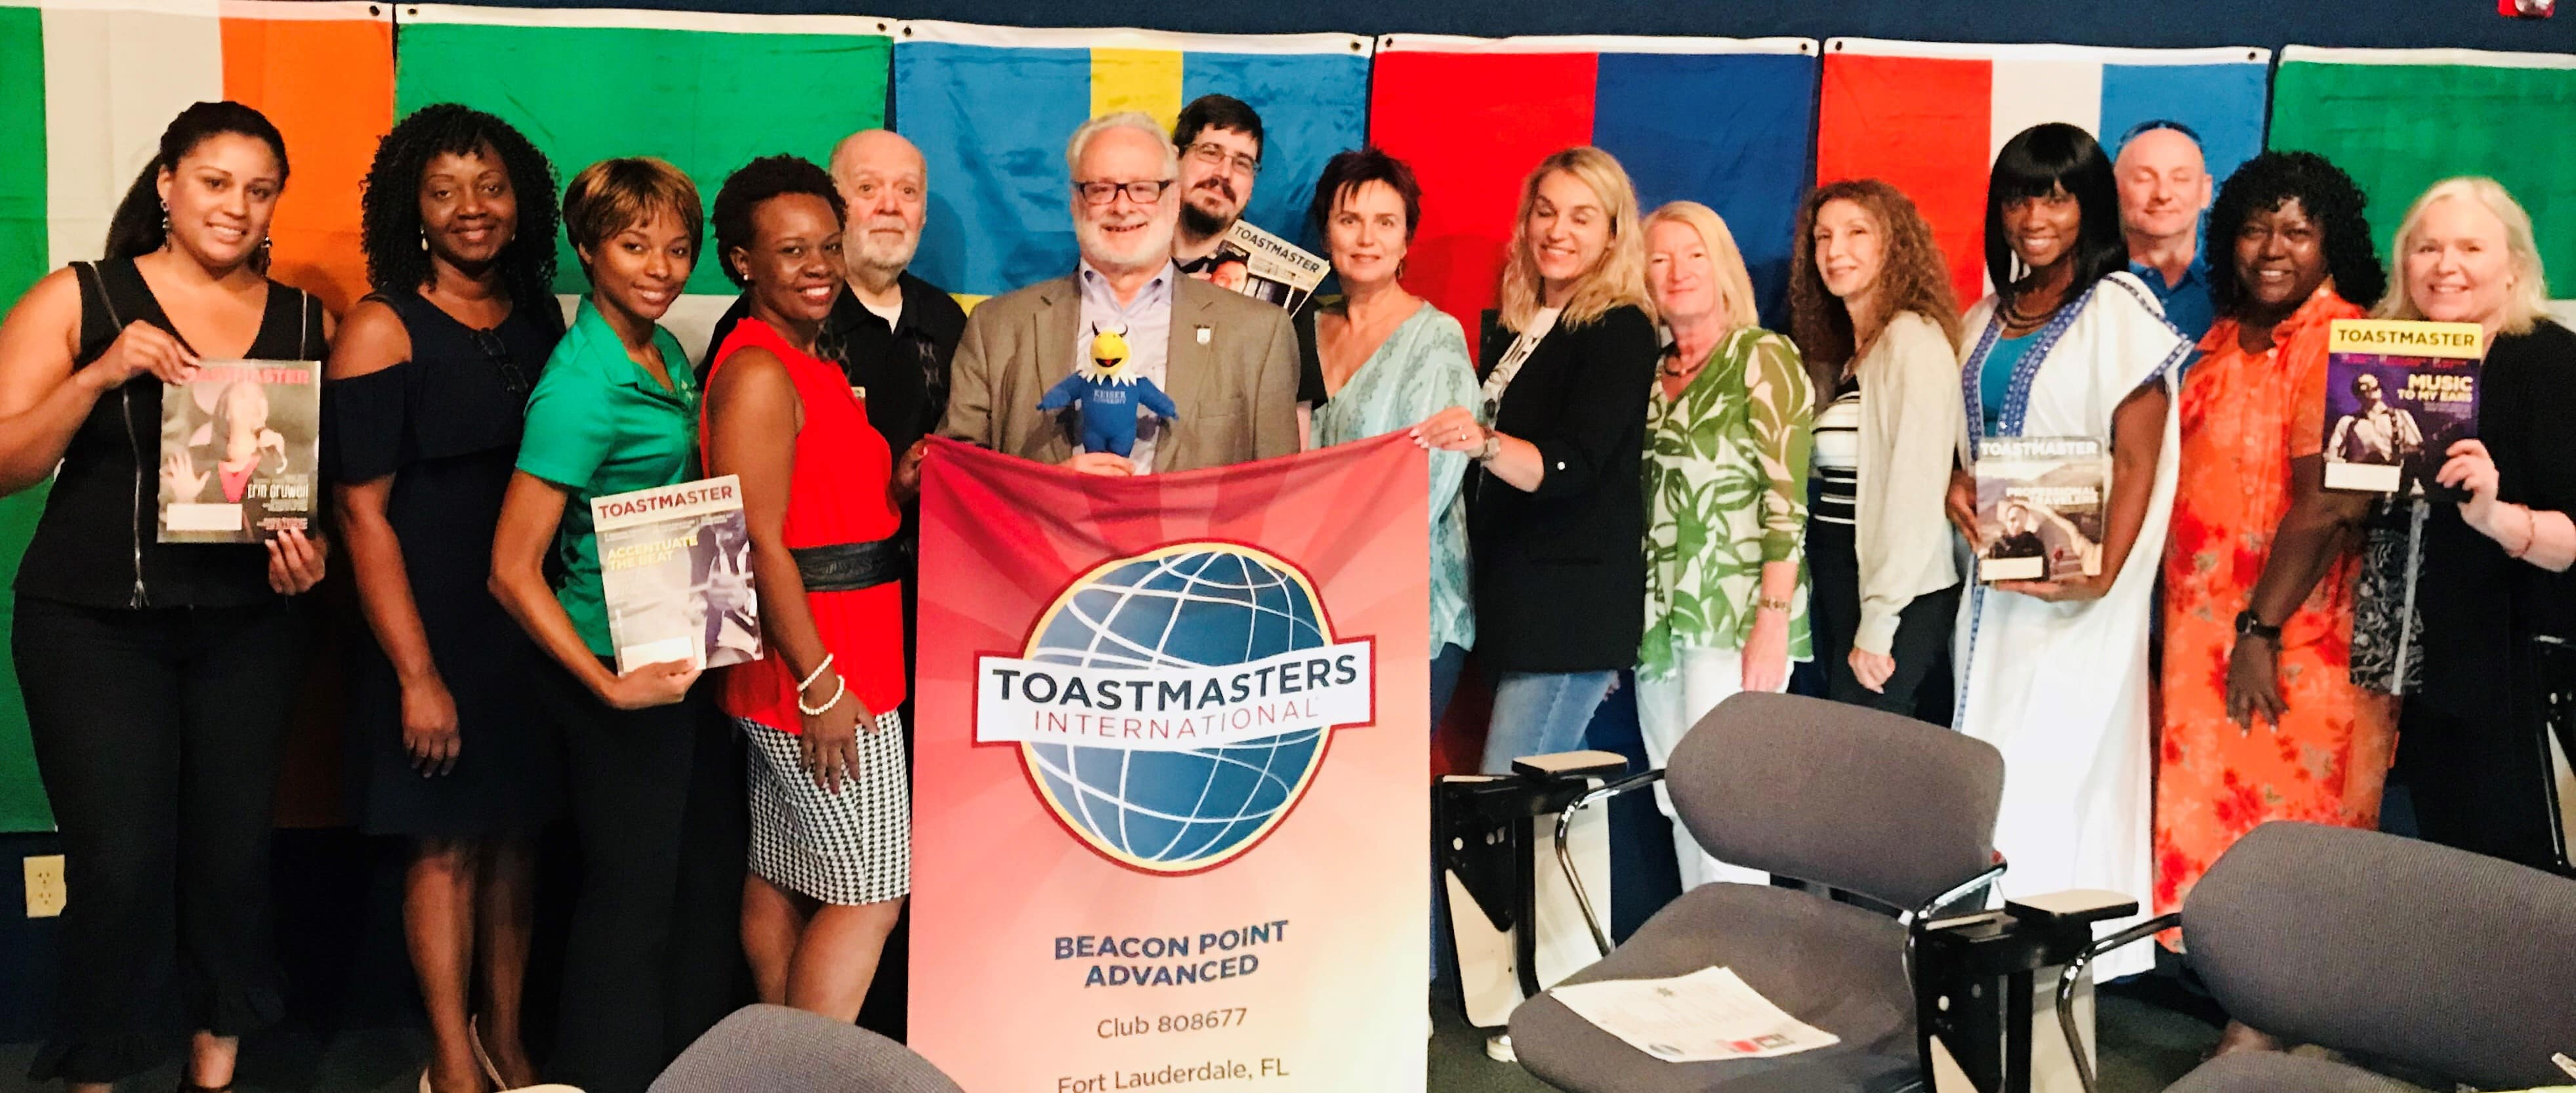 KU's Fort Lauderdale Campus Hosts Toastmasters Event